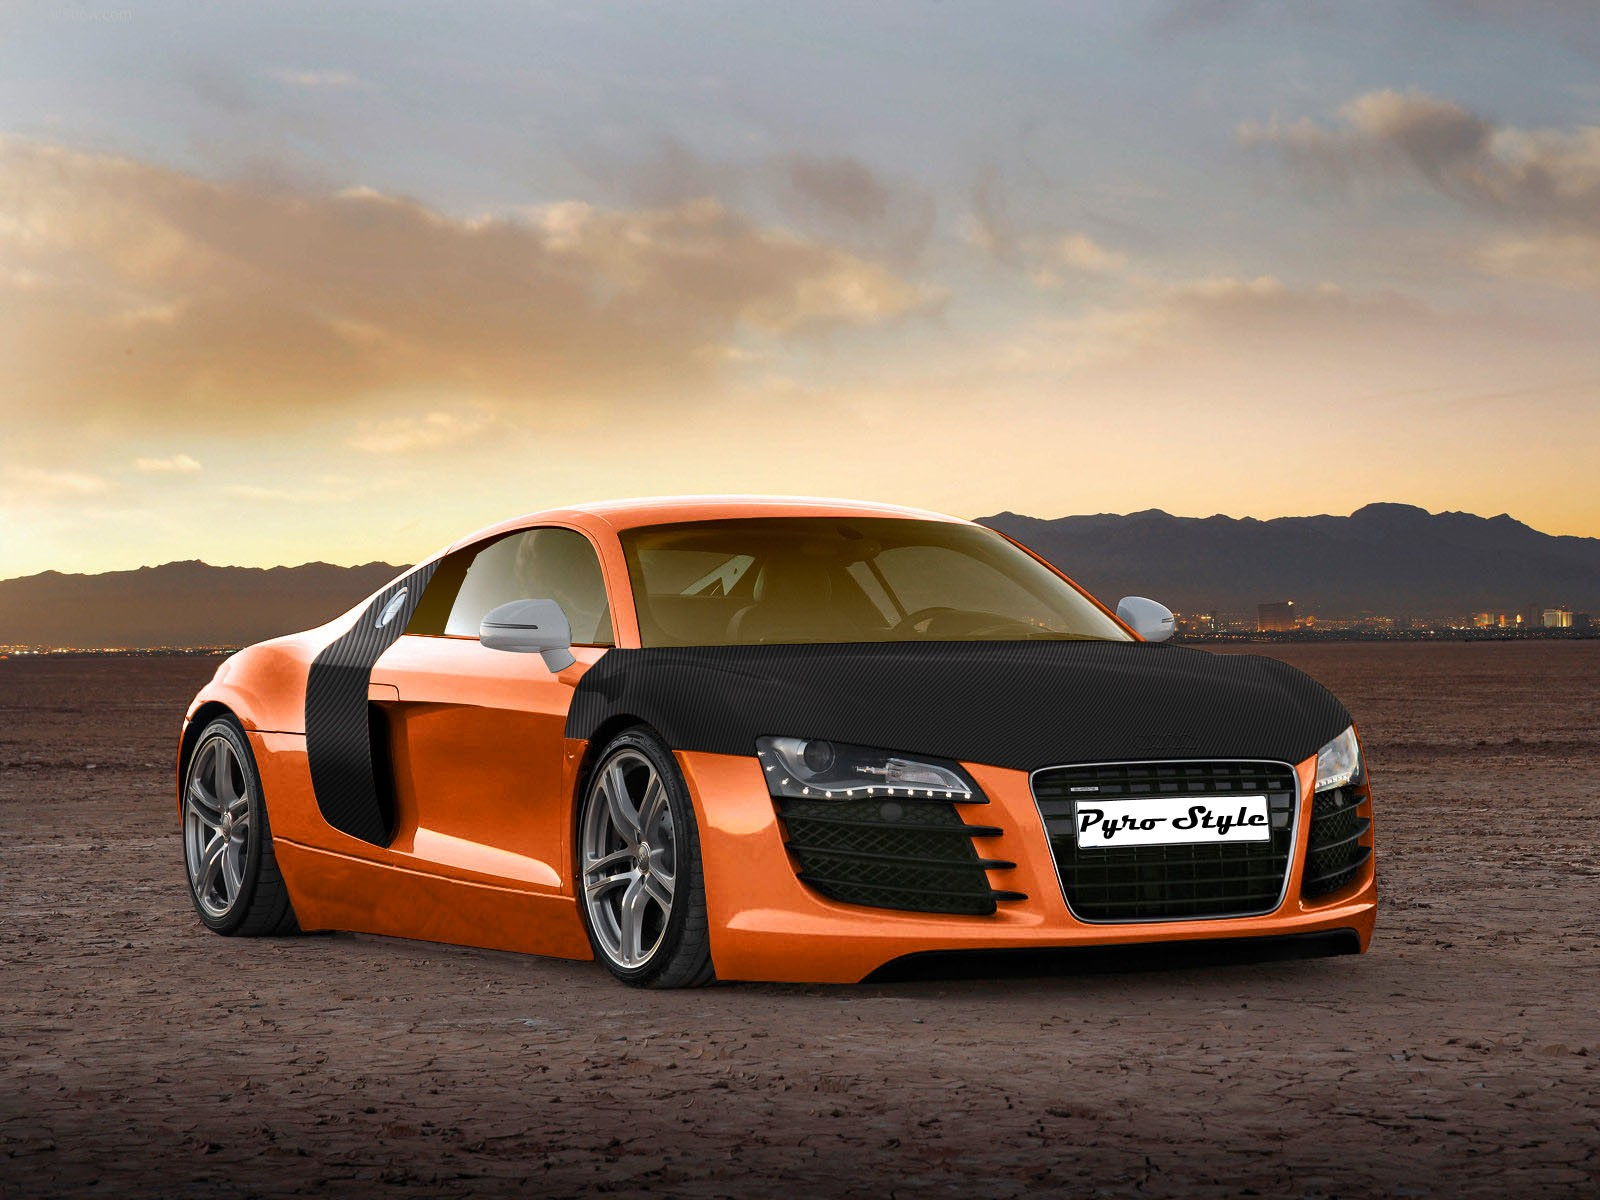 hd car wallpapers audi r8 wallpaper. Black Bedroom Furniture Sets. Home Design Ideas